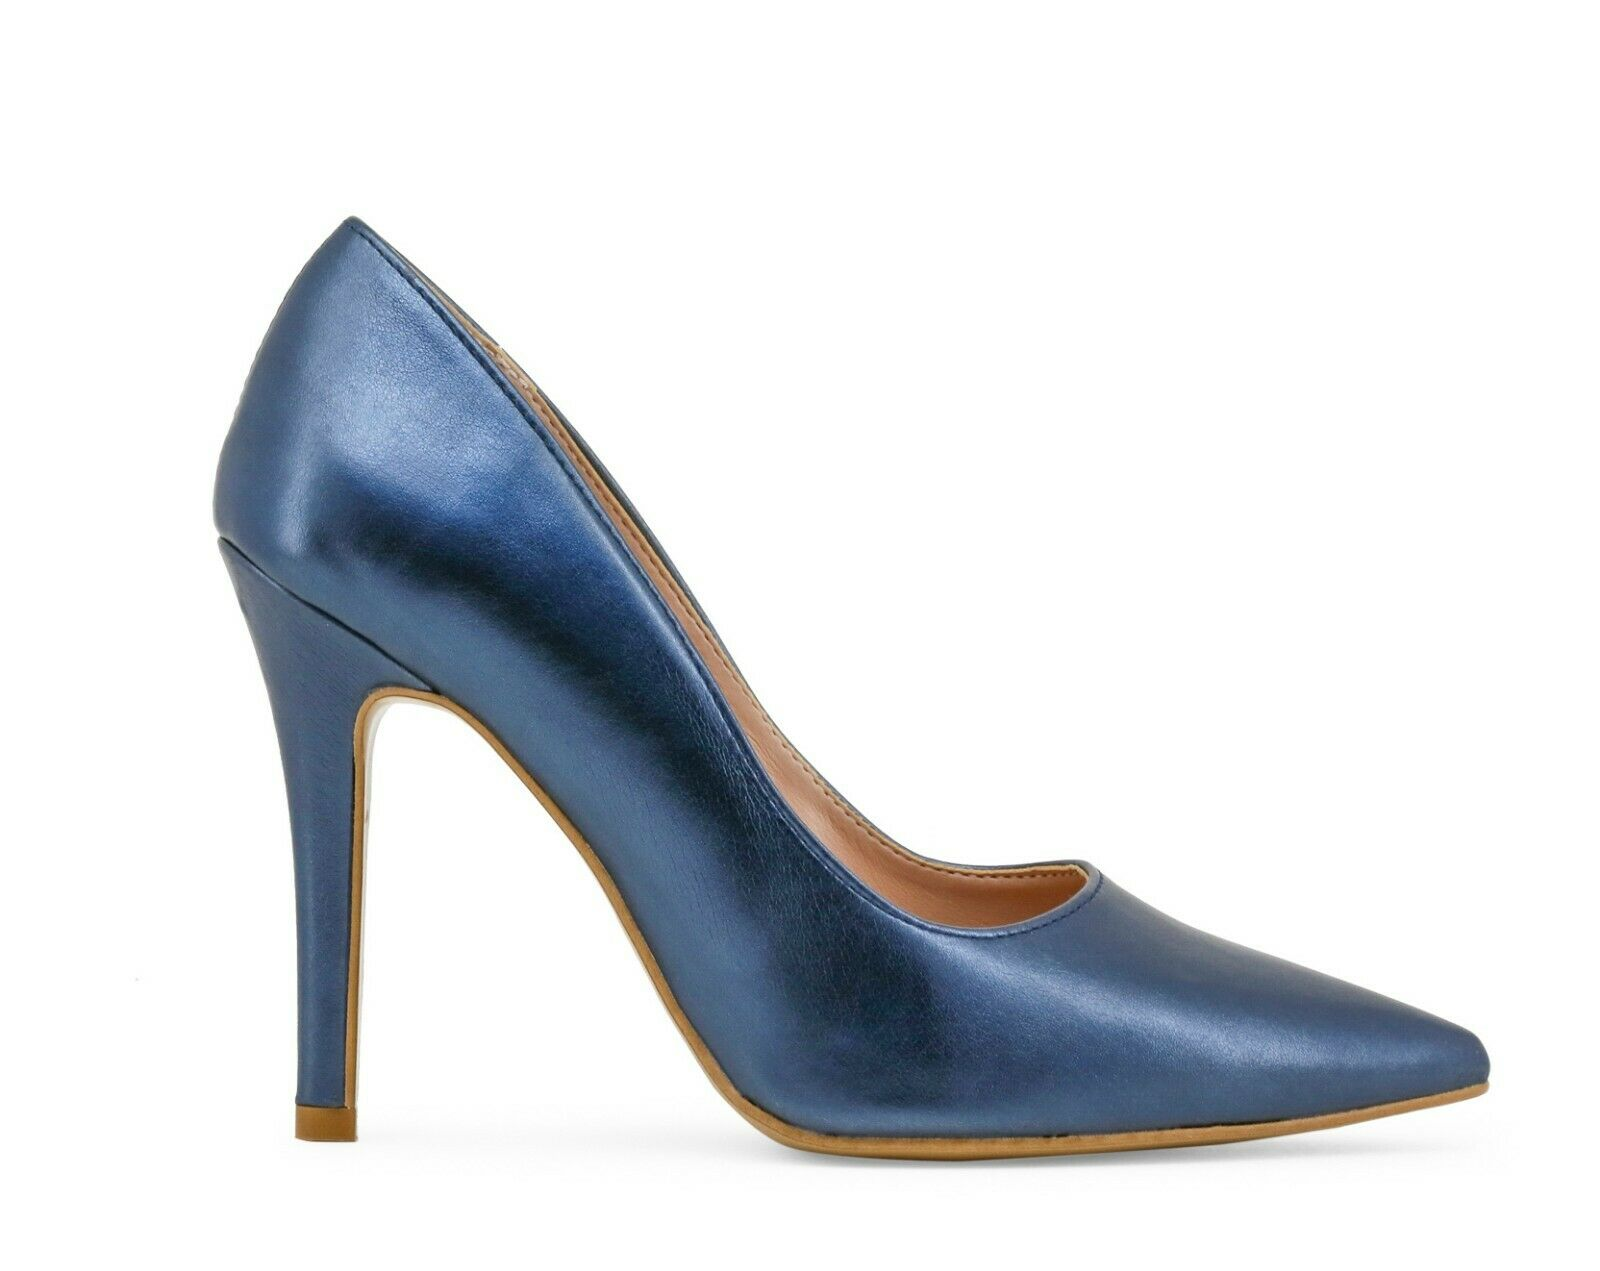 WOMENS LADIES HIGH HEEL PUMPS PUMPS PUMPS POINTED OFFICE PARTY DESIGNER BRANDED COURT SHOES f28289